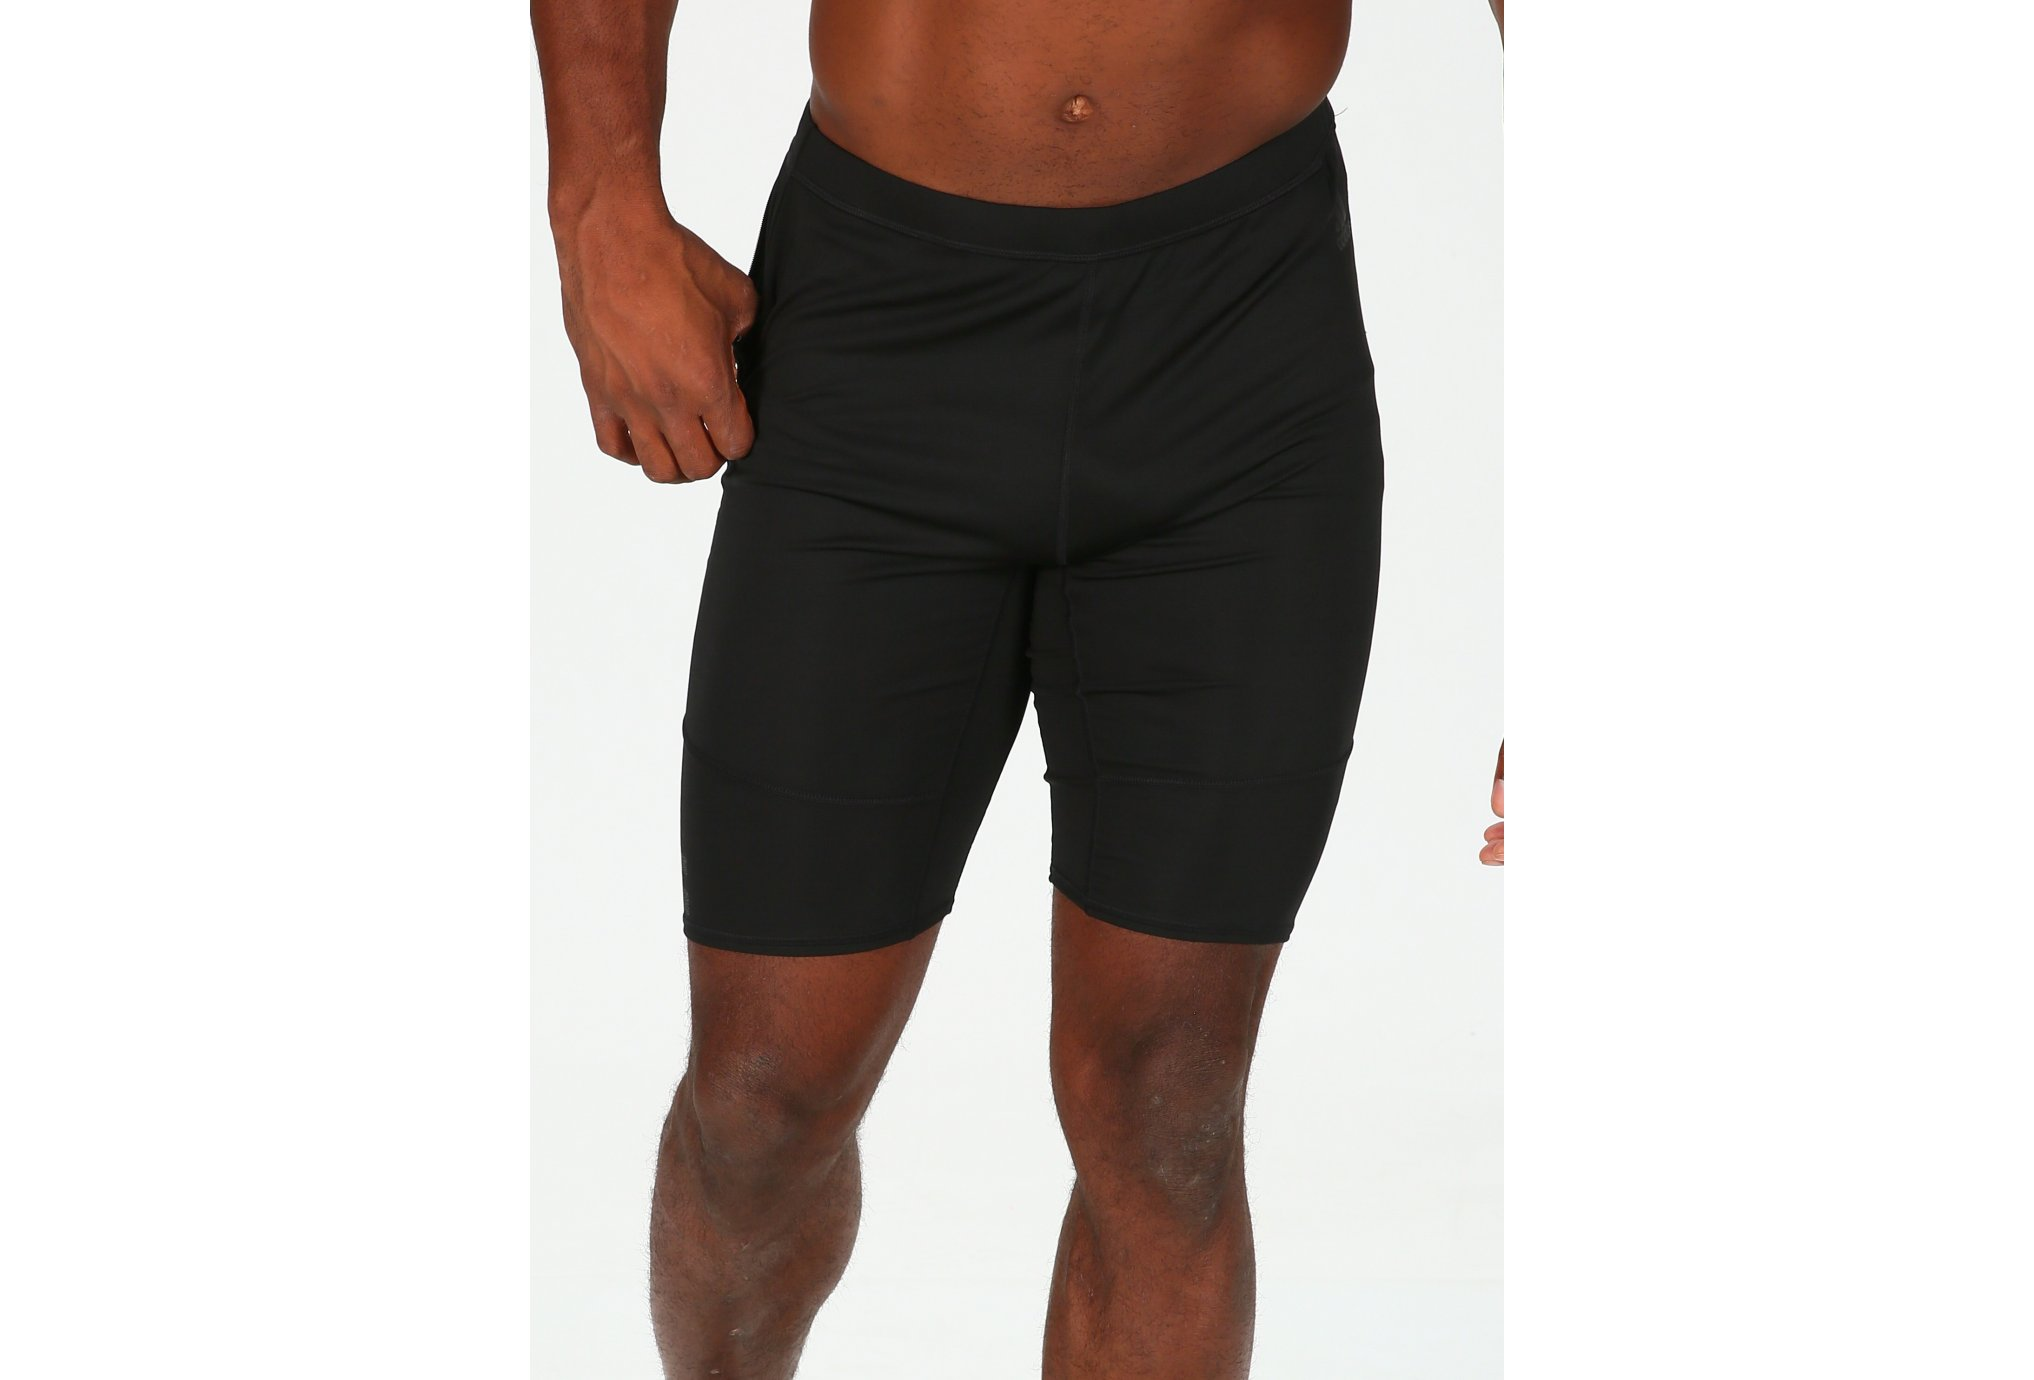 adidas Supernova Short Tight M vêtement running homme